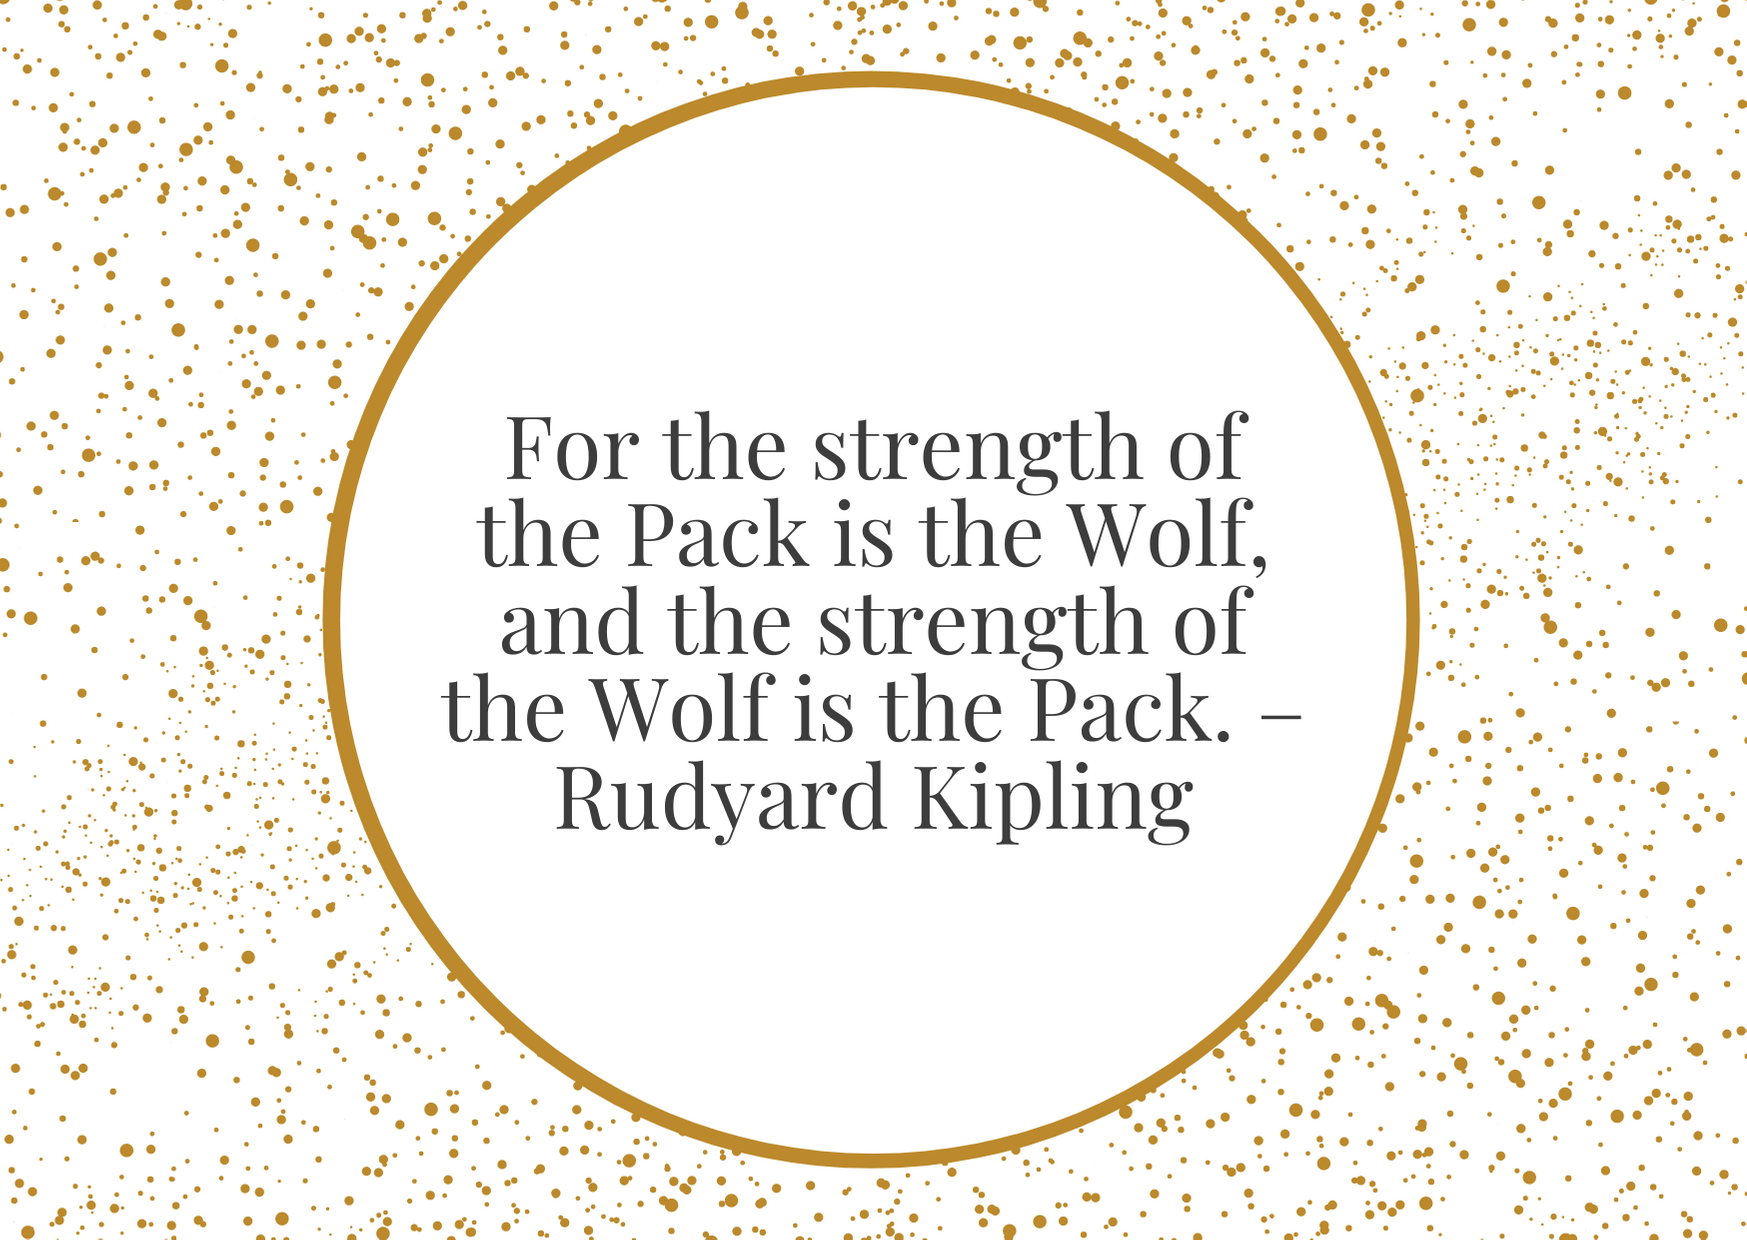 """""""For the strength of the Pack is the Wolf, and the strength of the Wolf is the Pack."""" – Rudyard Kipling"""